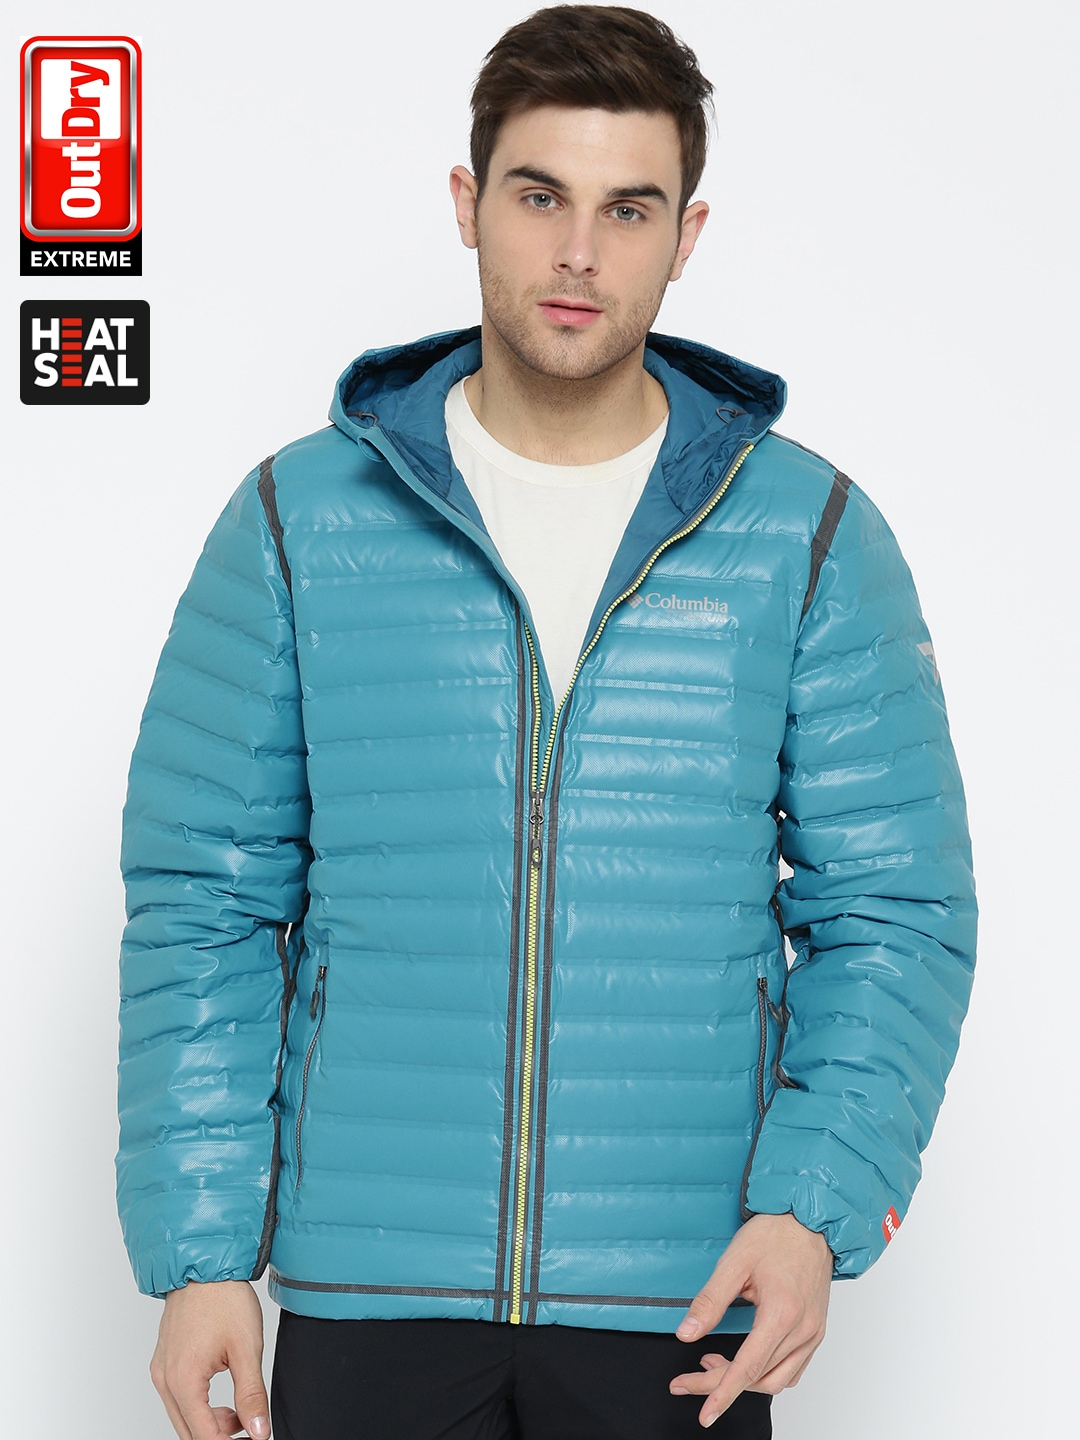 c72743bc65e2 Columbia Jackets - Buy Jackets from Columbia Online